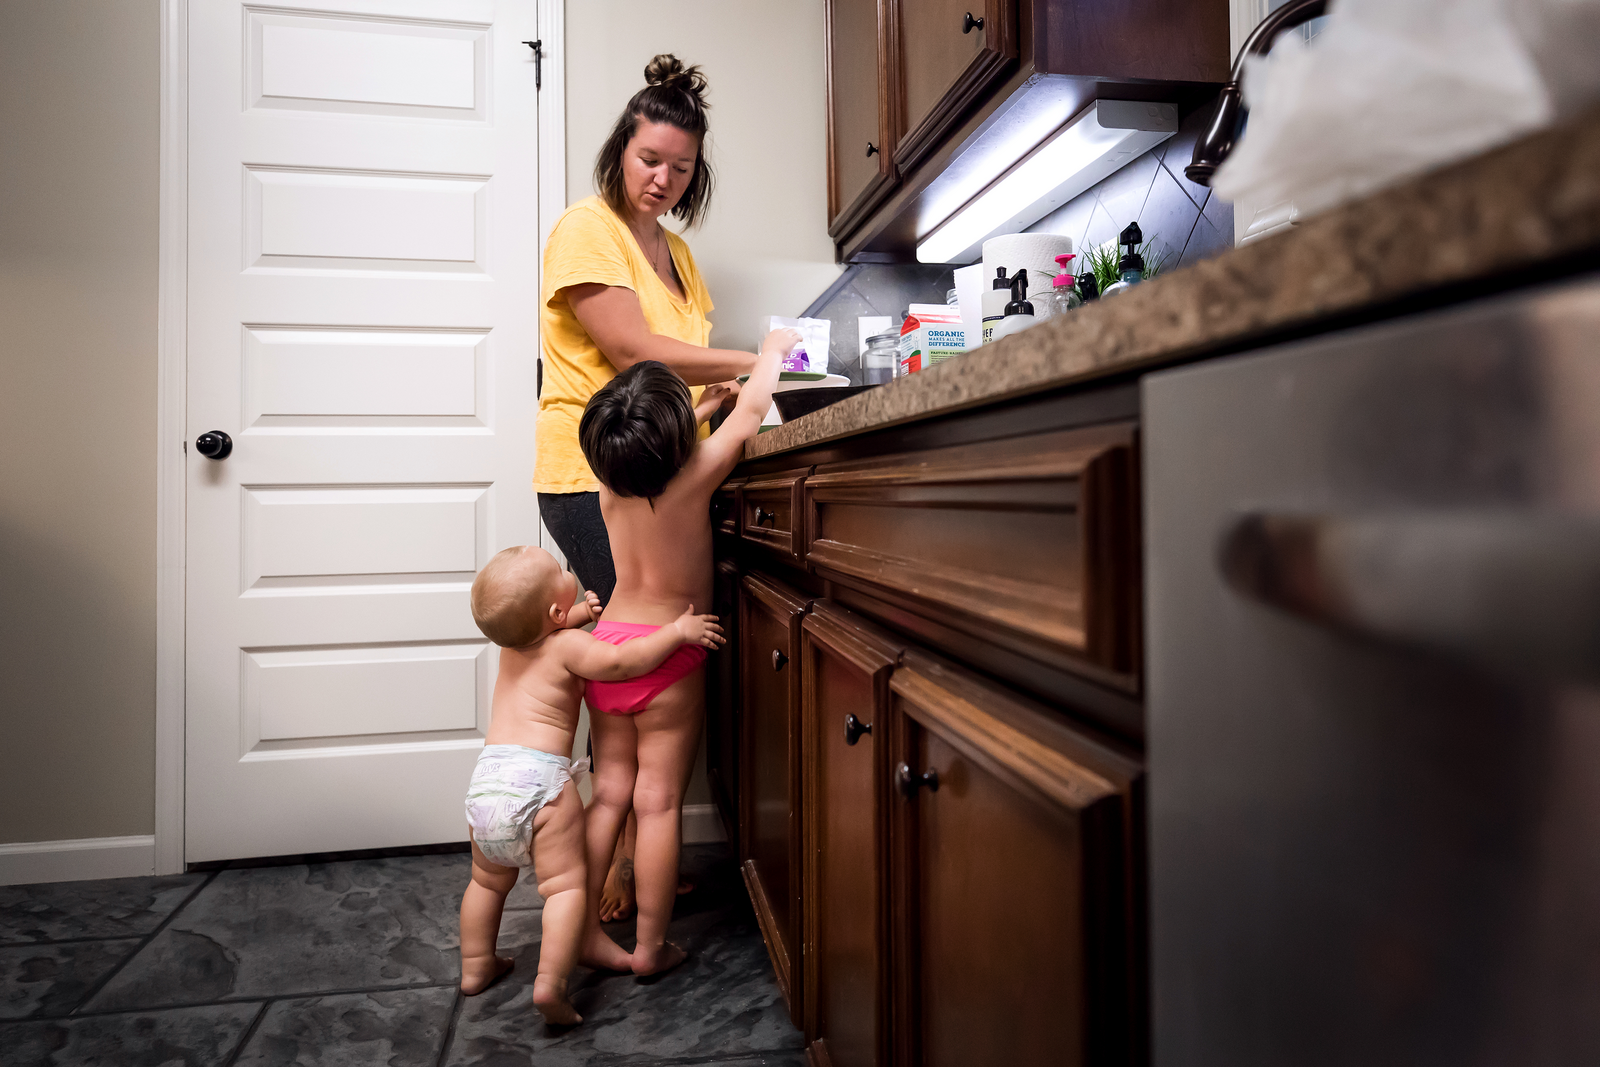 family photographer, columbus, ga, atlanta, documentary, photojournalism, mom in kitchen_0968